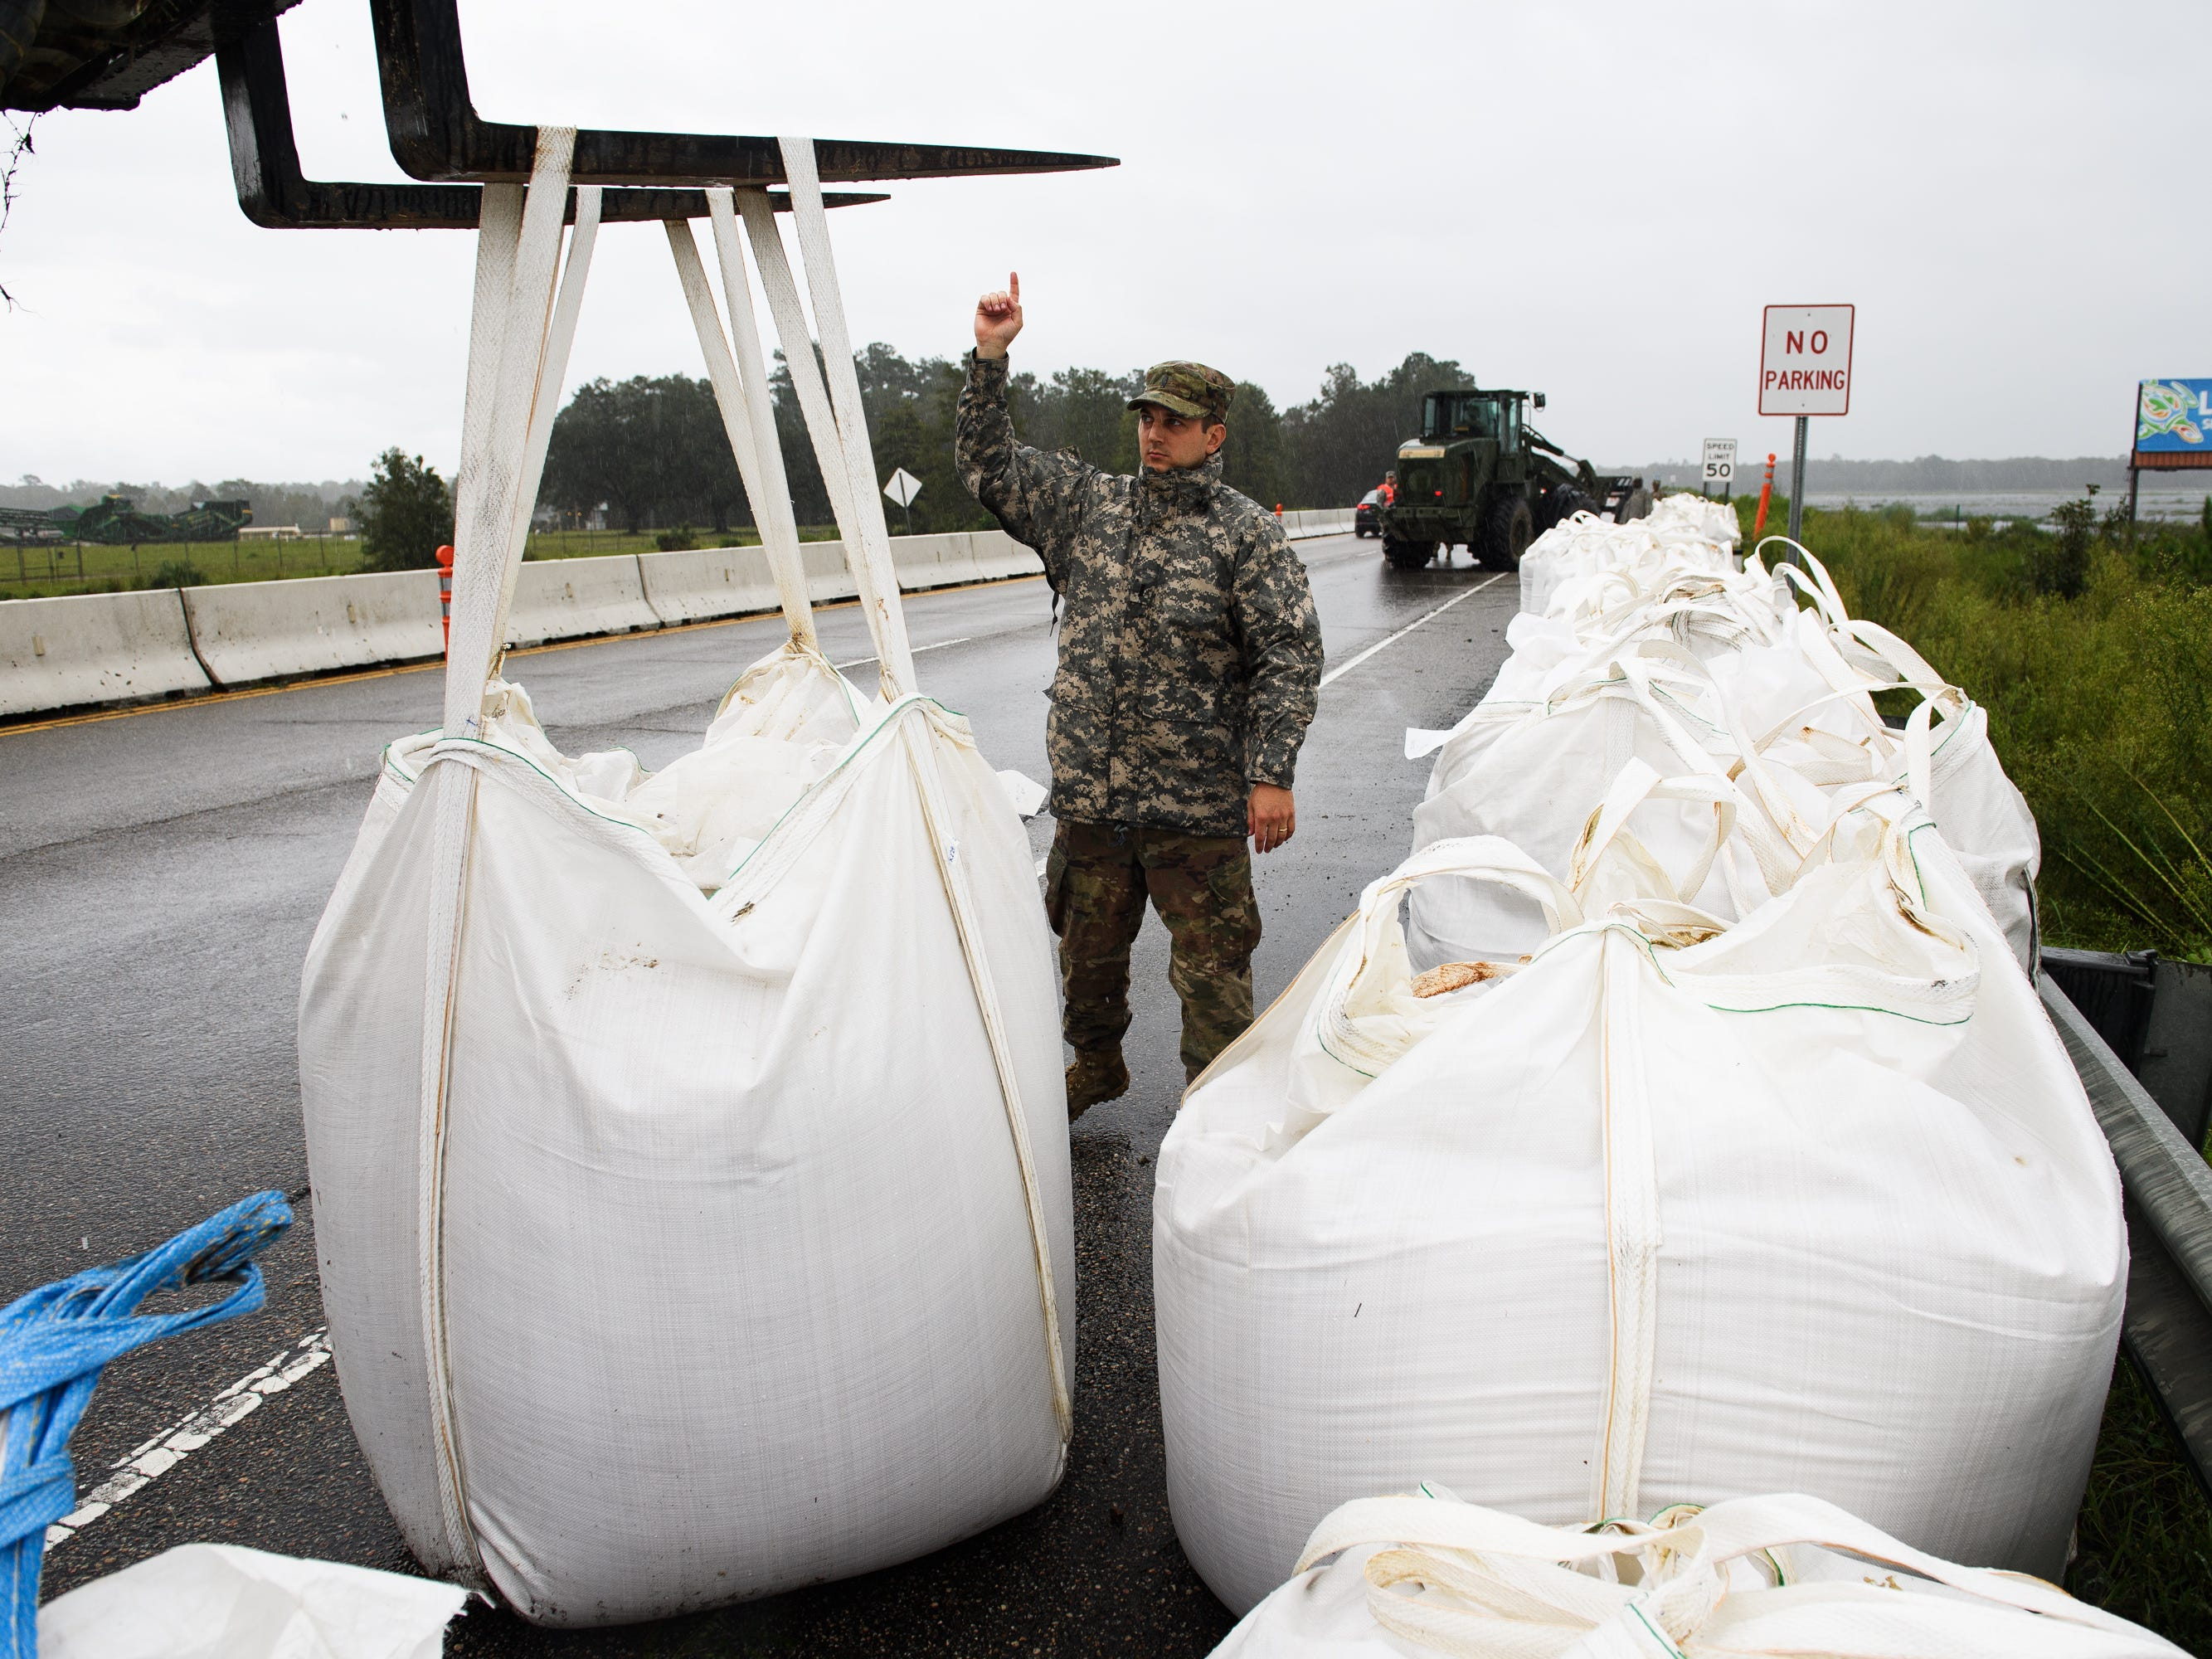 Engineering units of the South Carolina Army National Guard lay down sand bags along U.S. 501 South just outside of Conway, S.C. on Sunday, Sept. 16, 2018, in preparation of rising water levels on the Waccamaw River due to Florence.